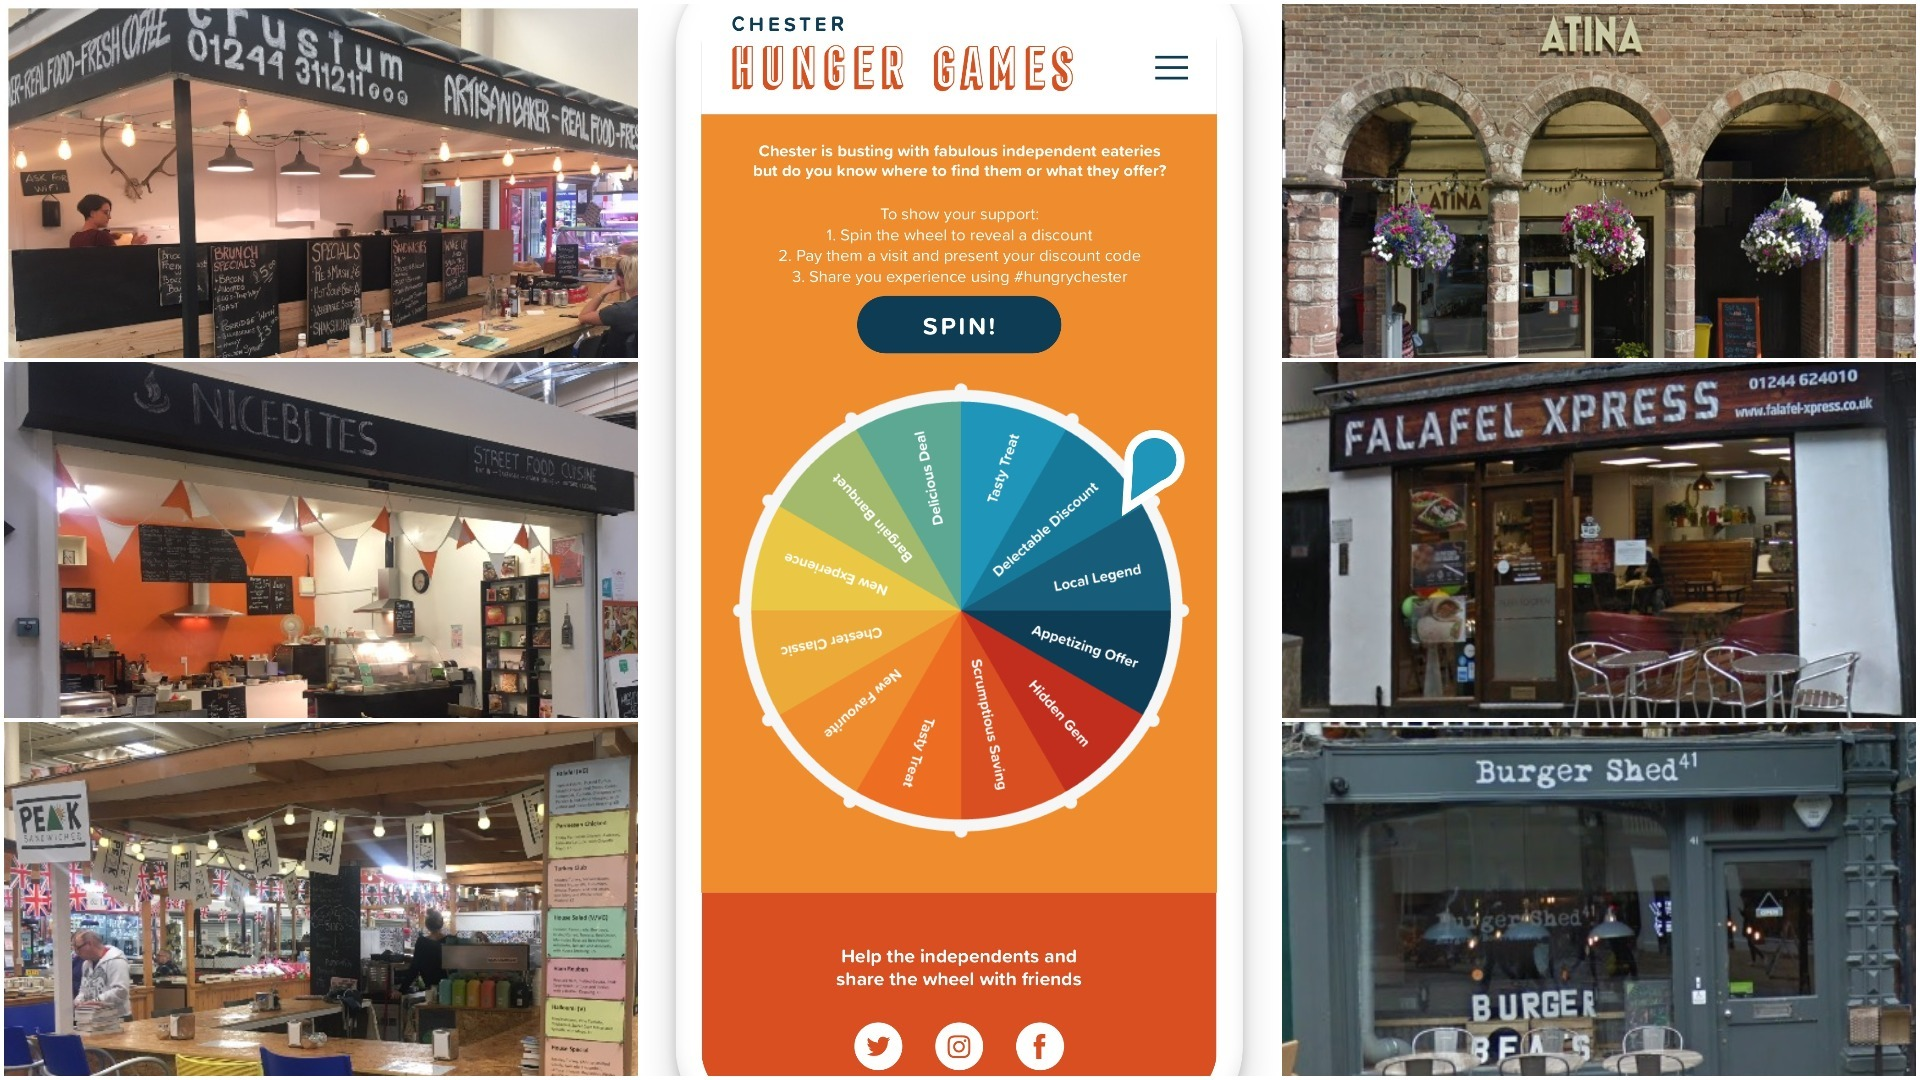 Chester Hunger Games launched – see all the restaurants taking part